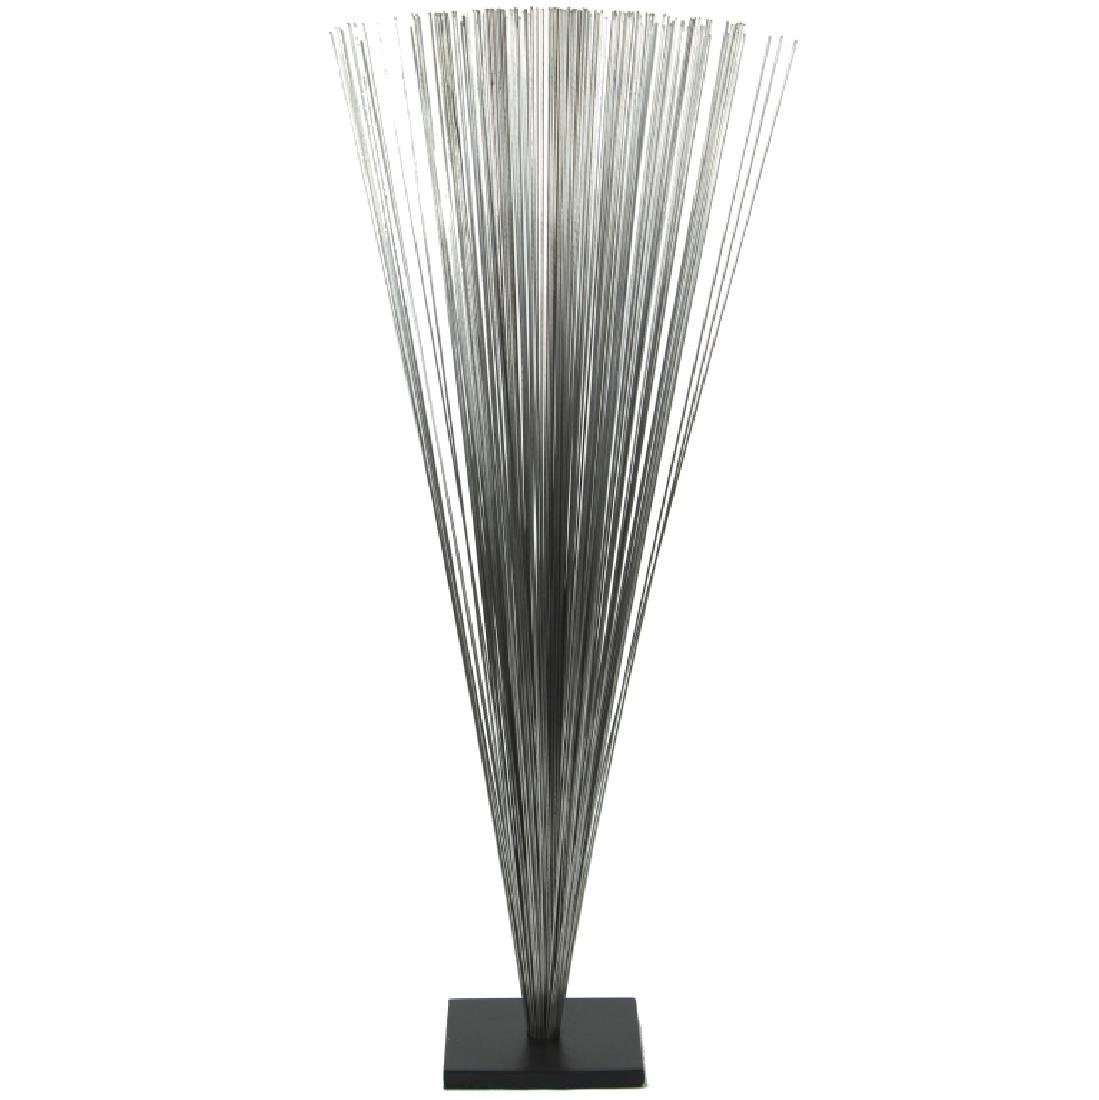 STAINLESS STEEL SPRAY SCULPTURE